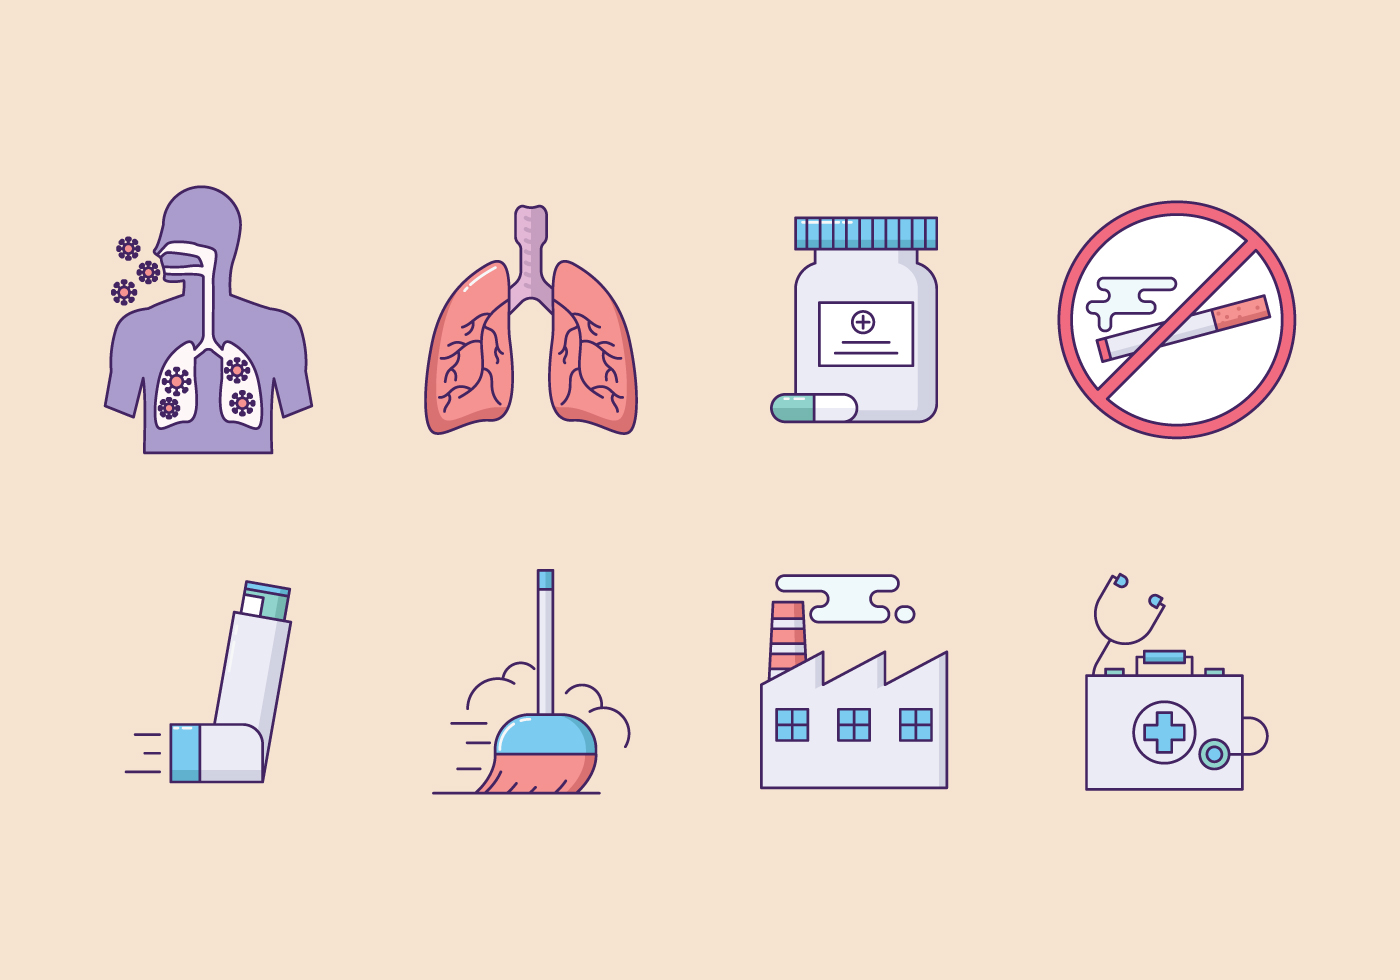 Asthma Symptoms Icon Set - Download Free Vector Art, Stock Graphics ...